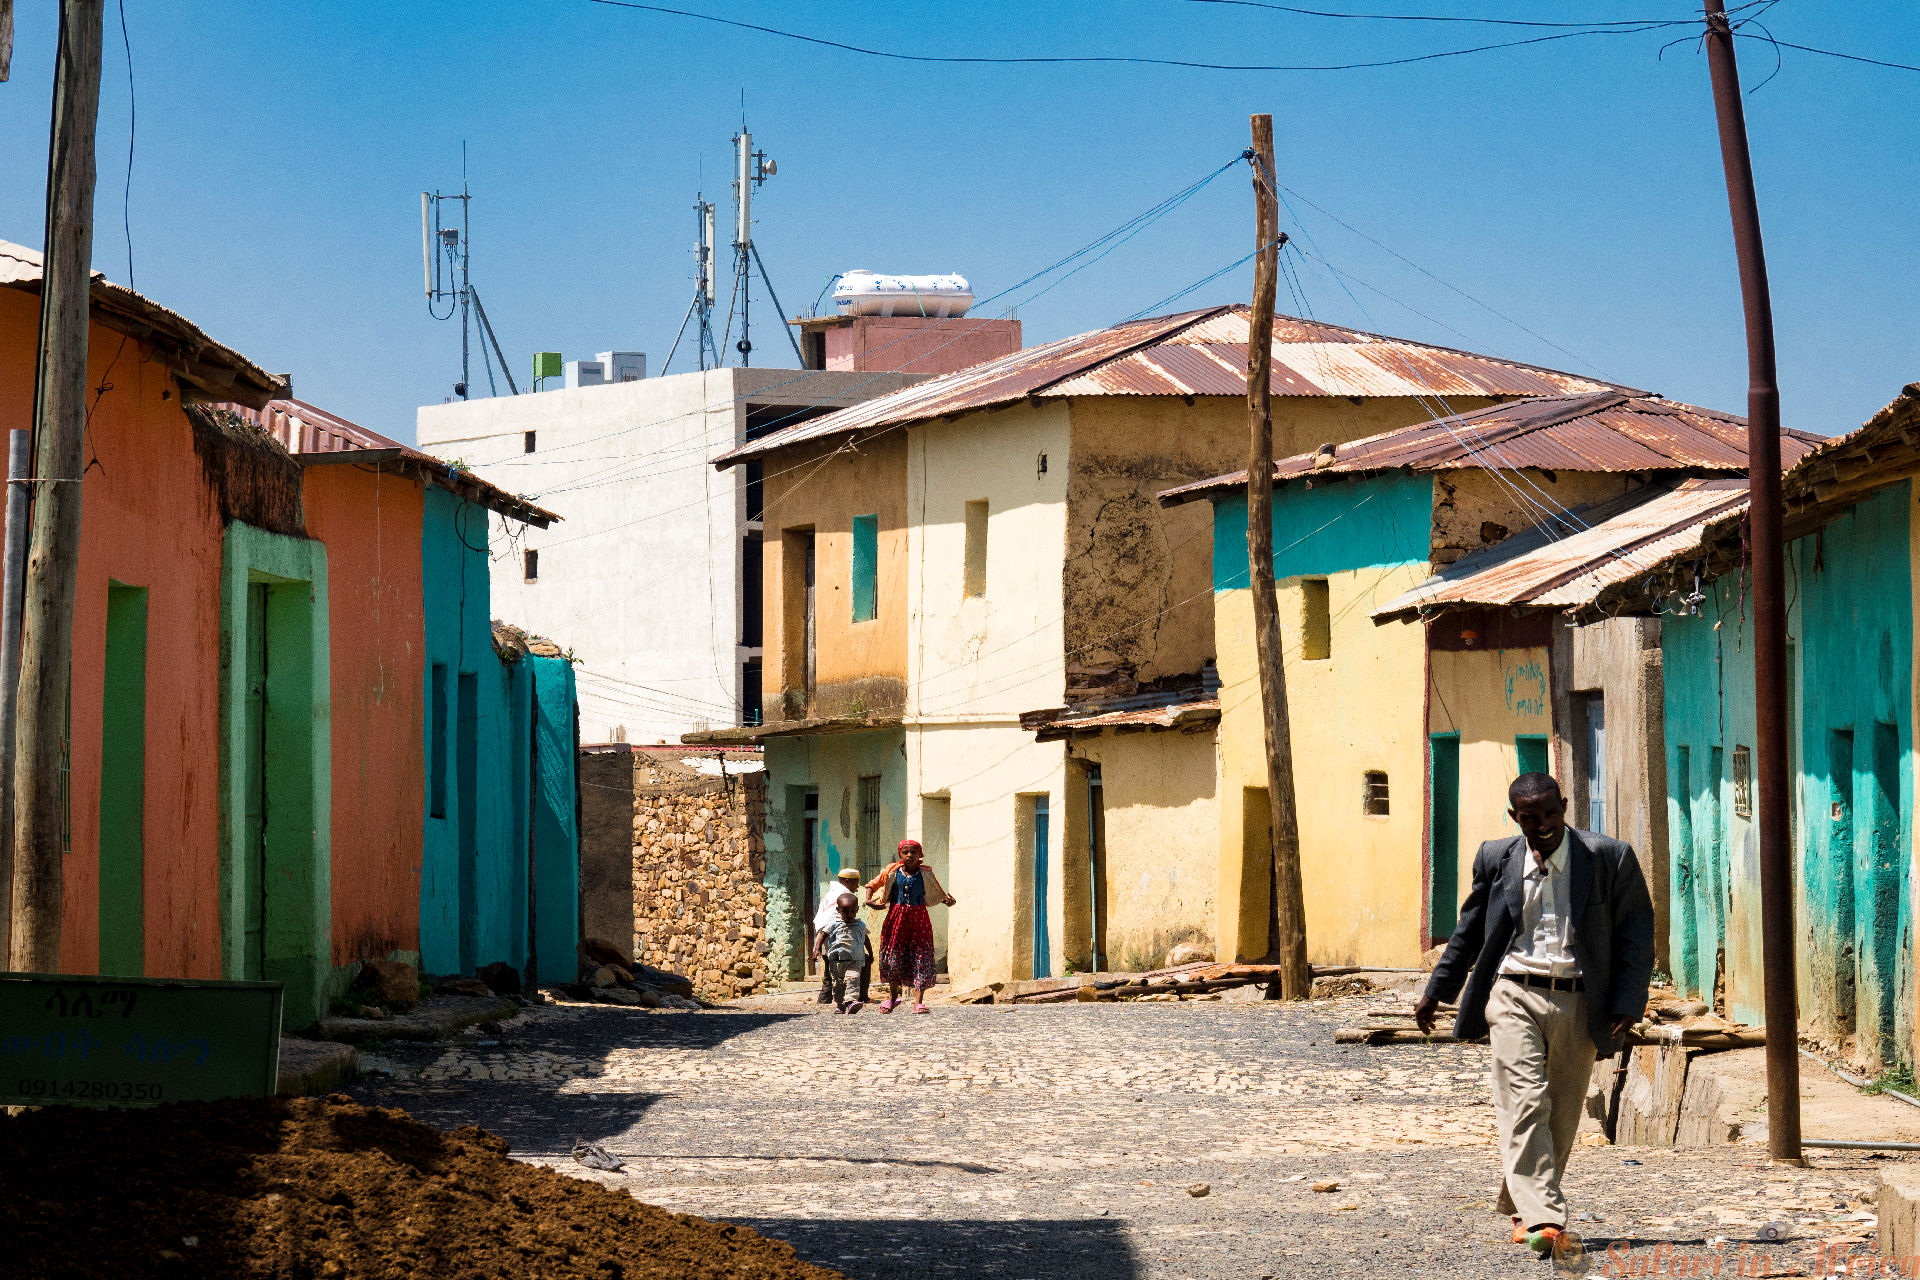 Street scene and man in Axum